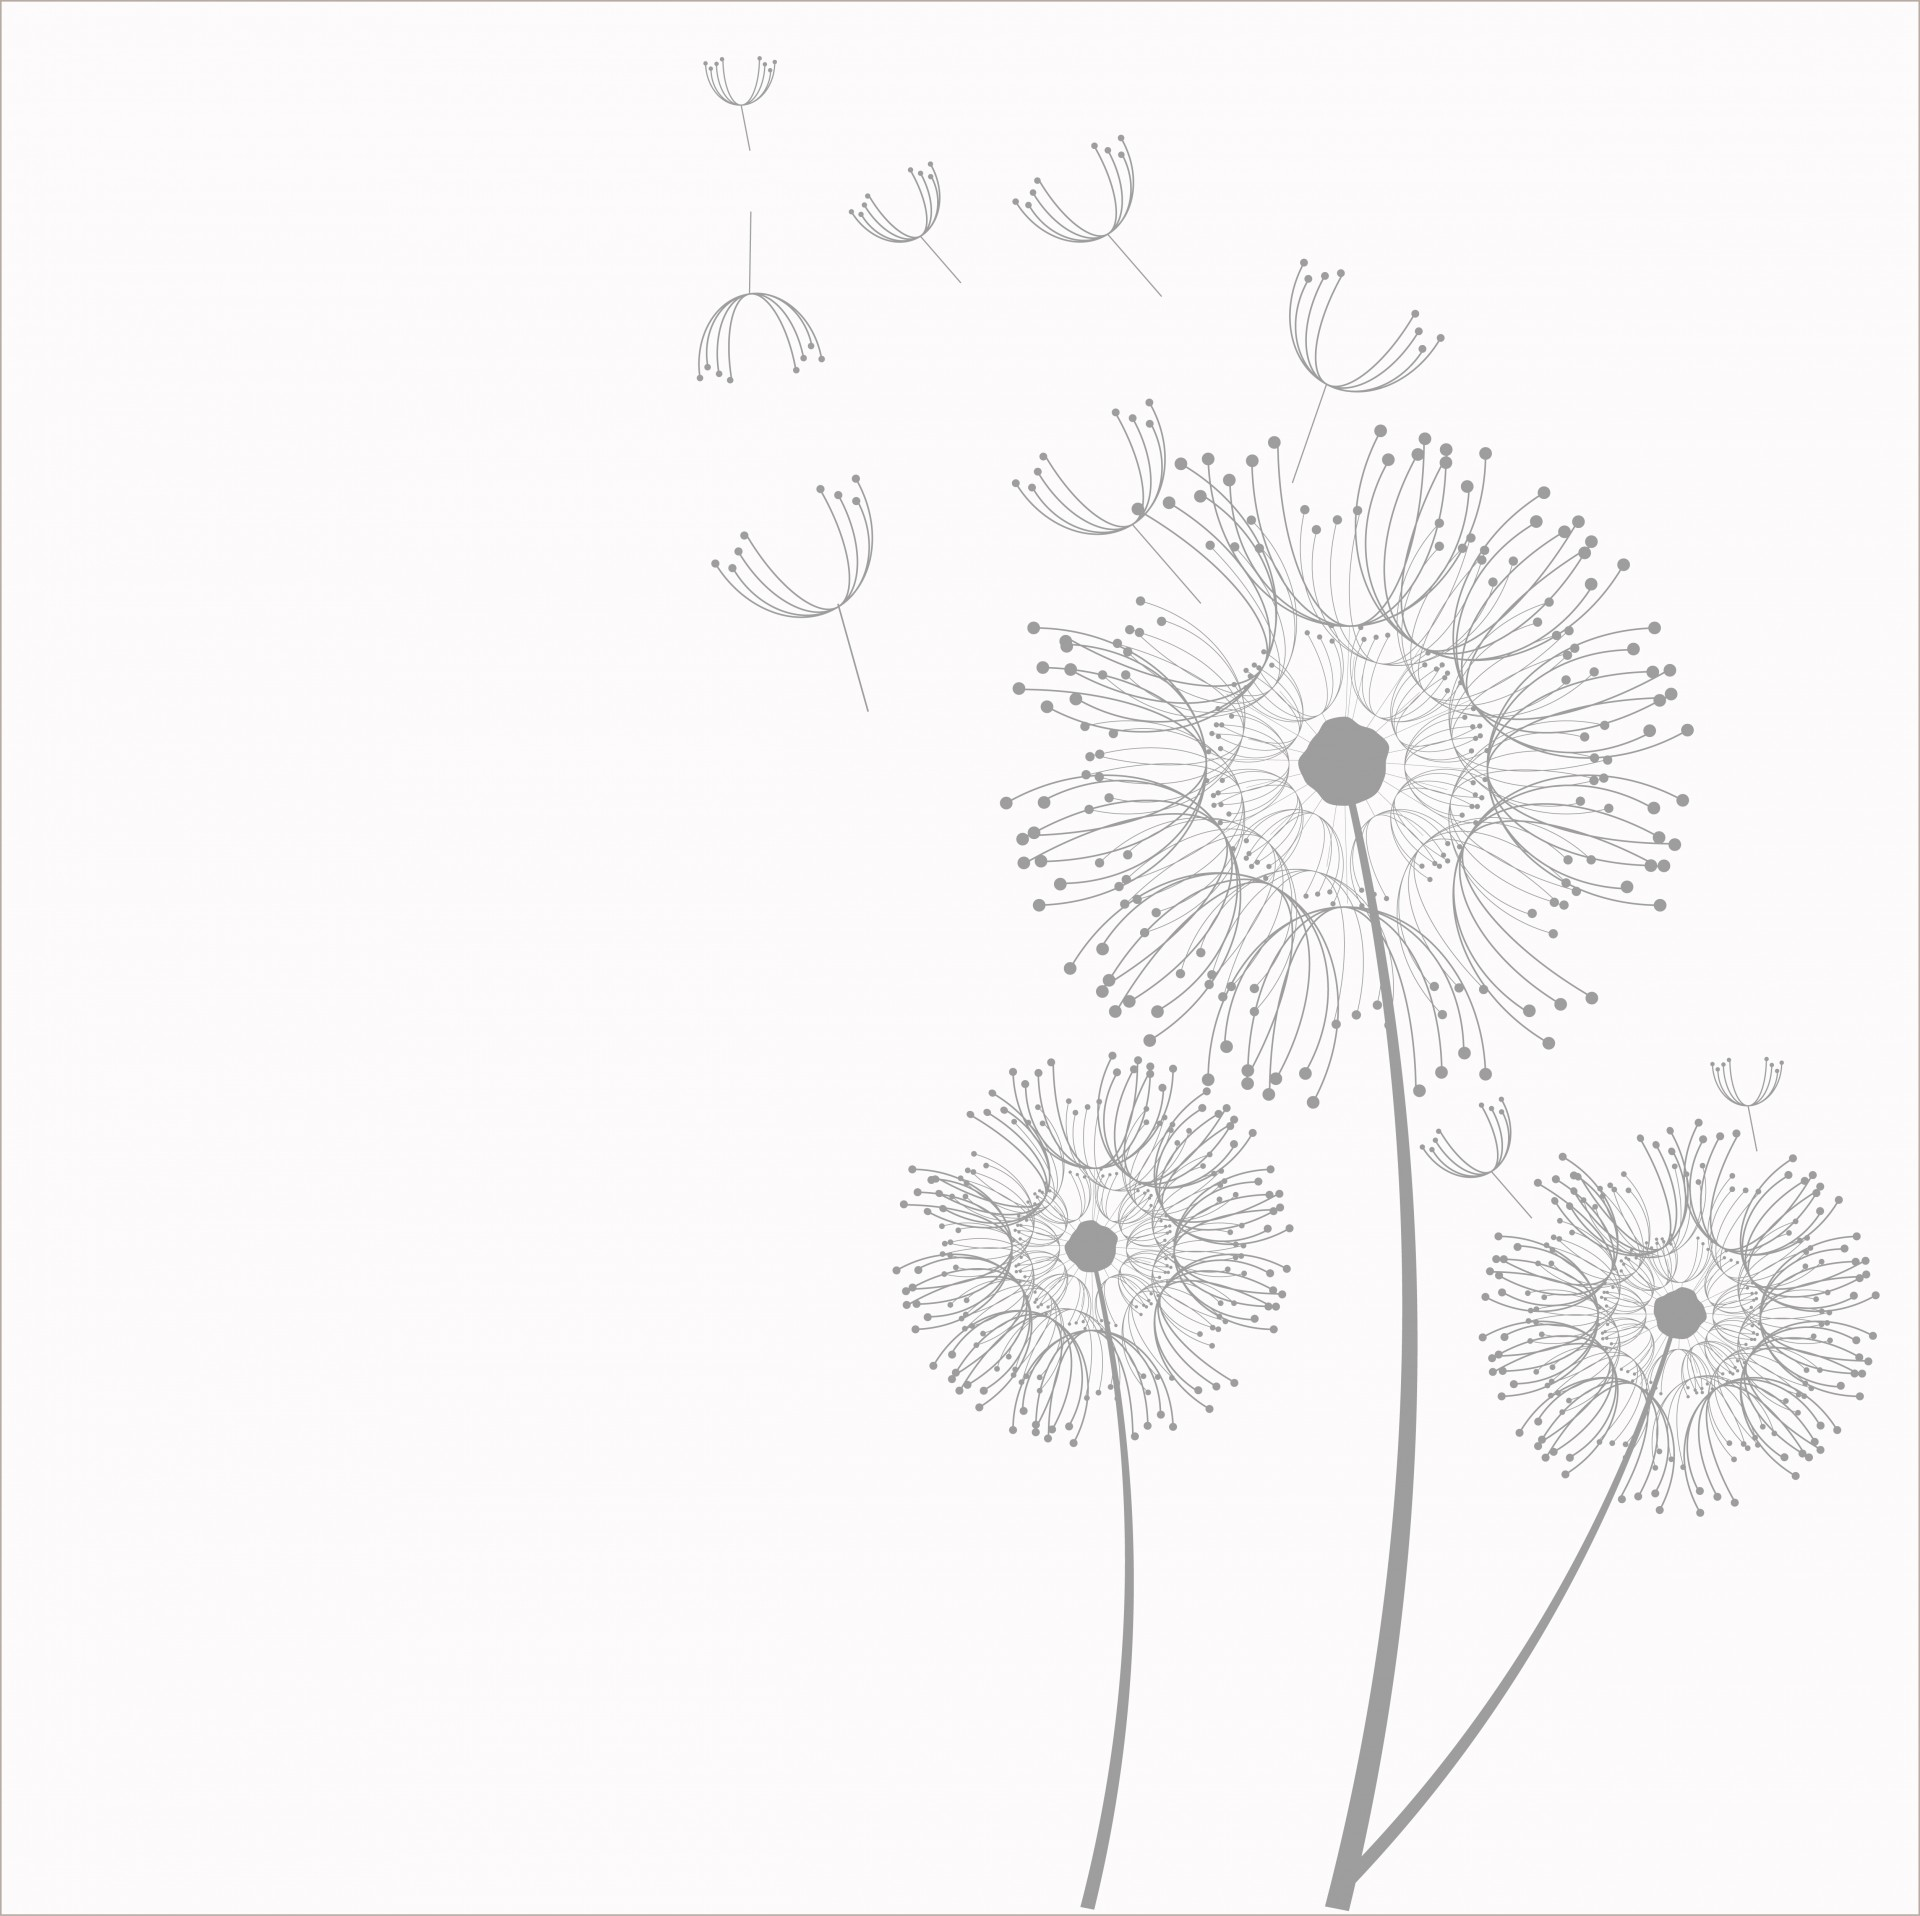 Dandelion clipart. Flowers free stock photo